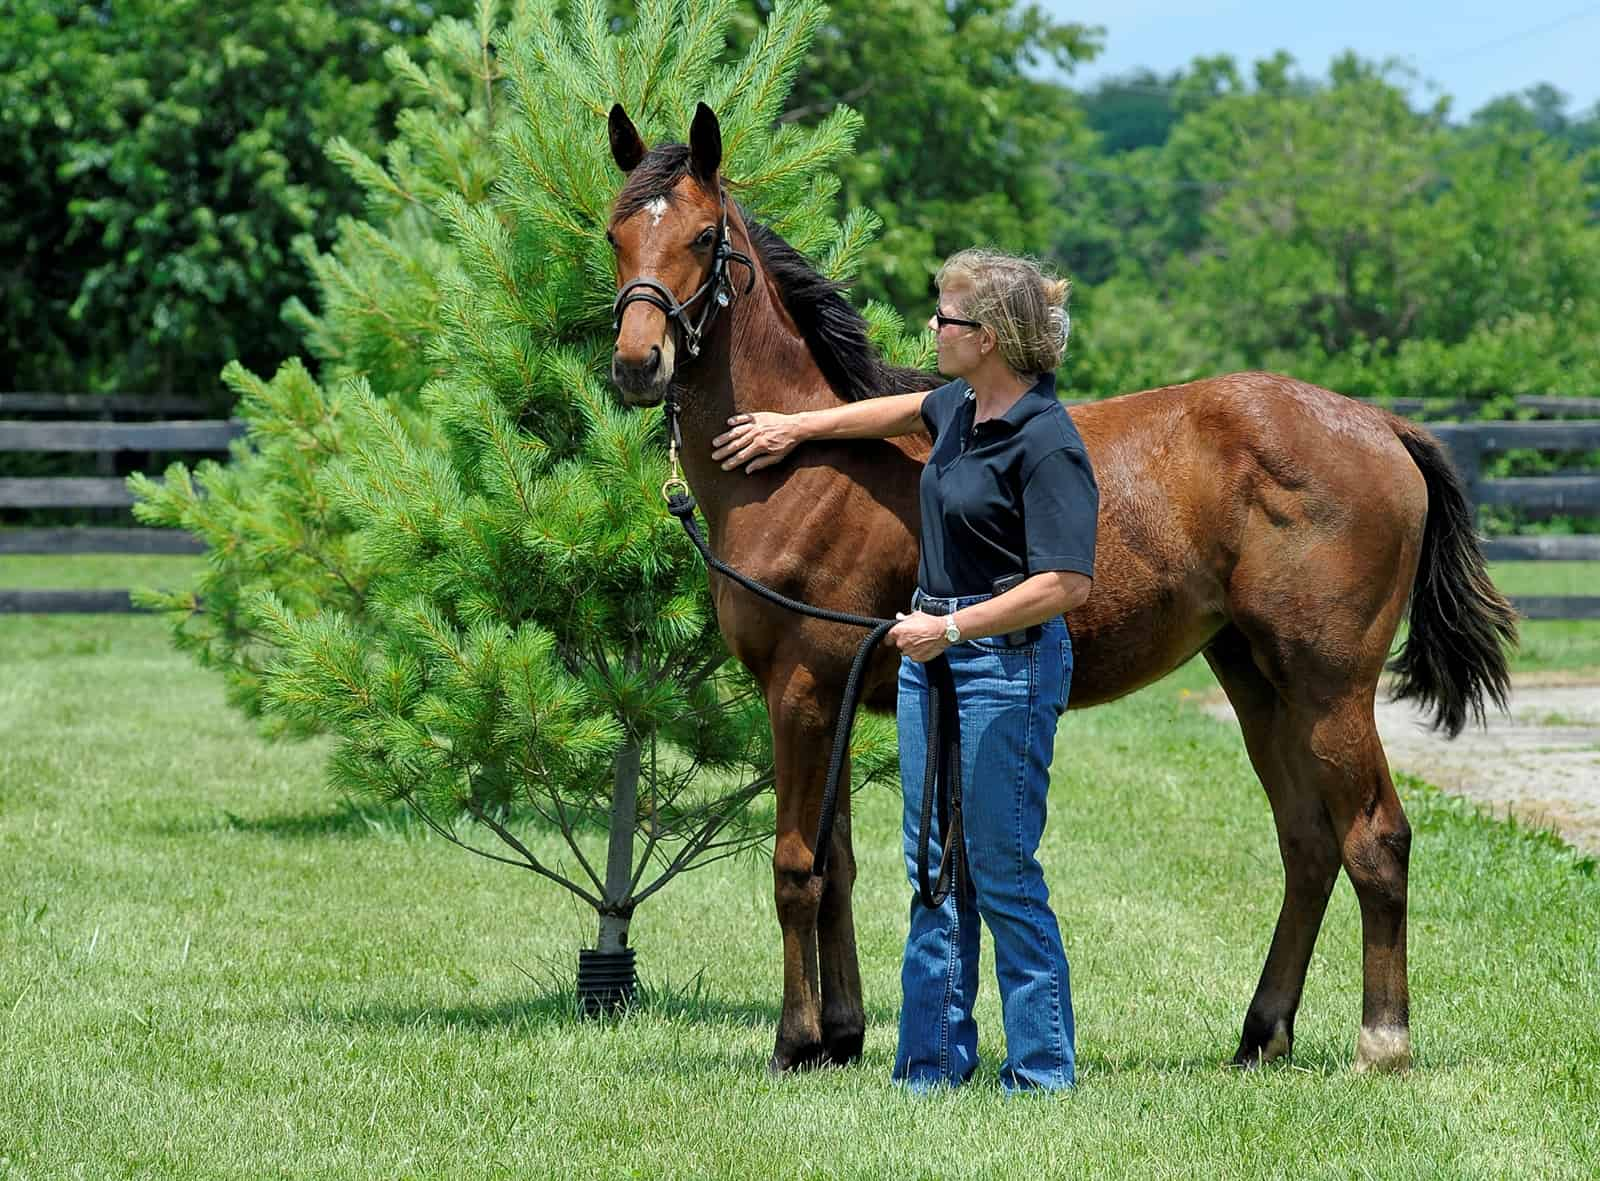 How Do I Get My Horse to Respect Me?